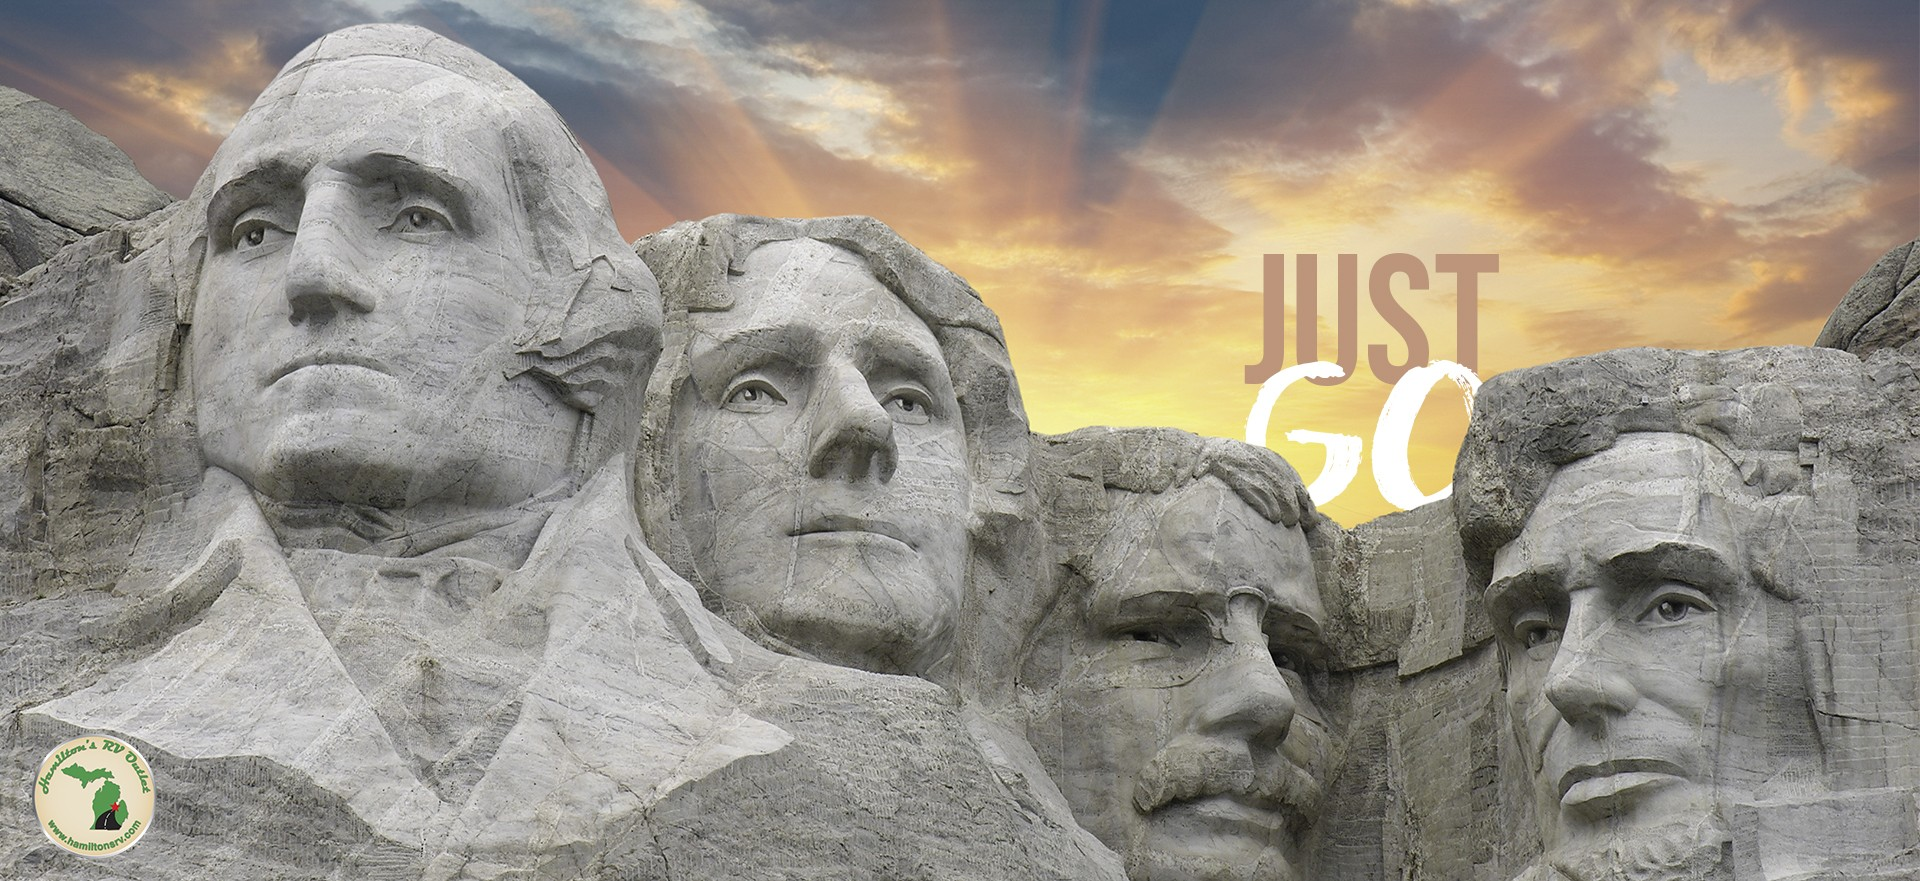 just go to mount rushmore